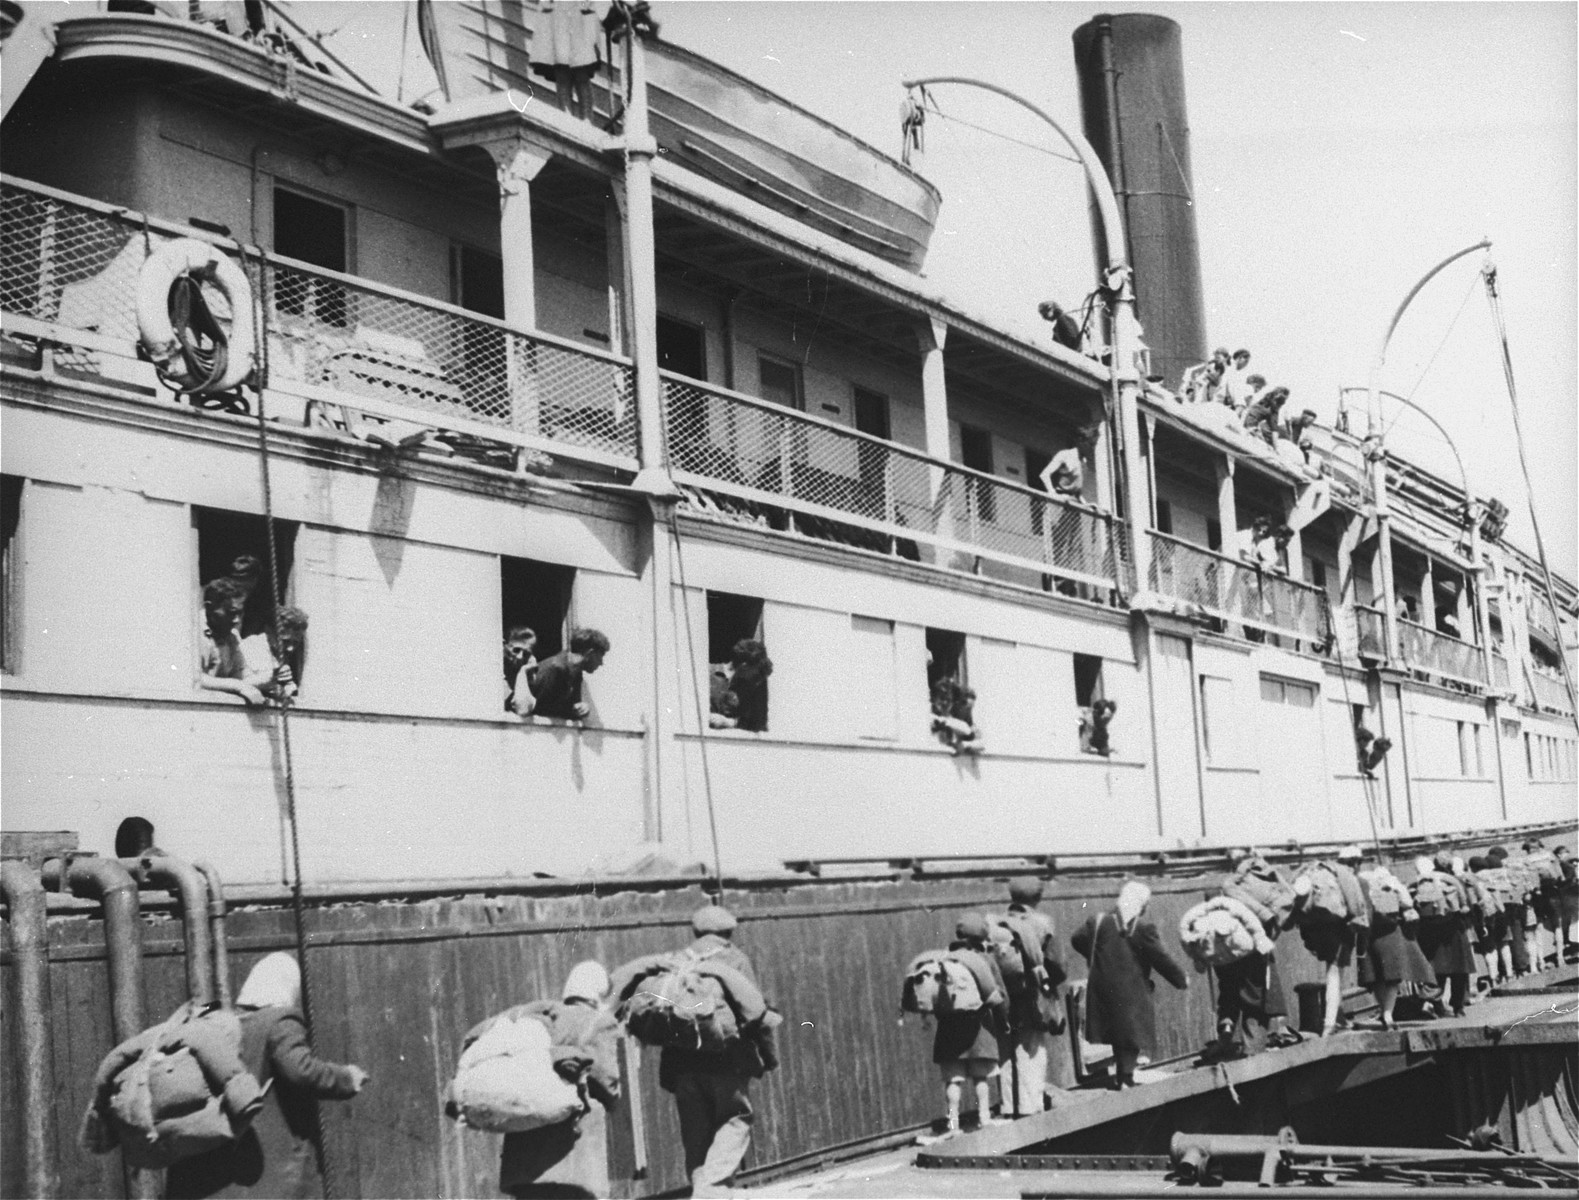 Exodus 1947 refugees board the President Warfield, docked at a quay in Sete's harbor, from a neighboring boat.